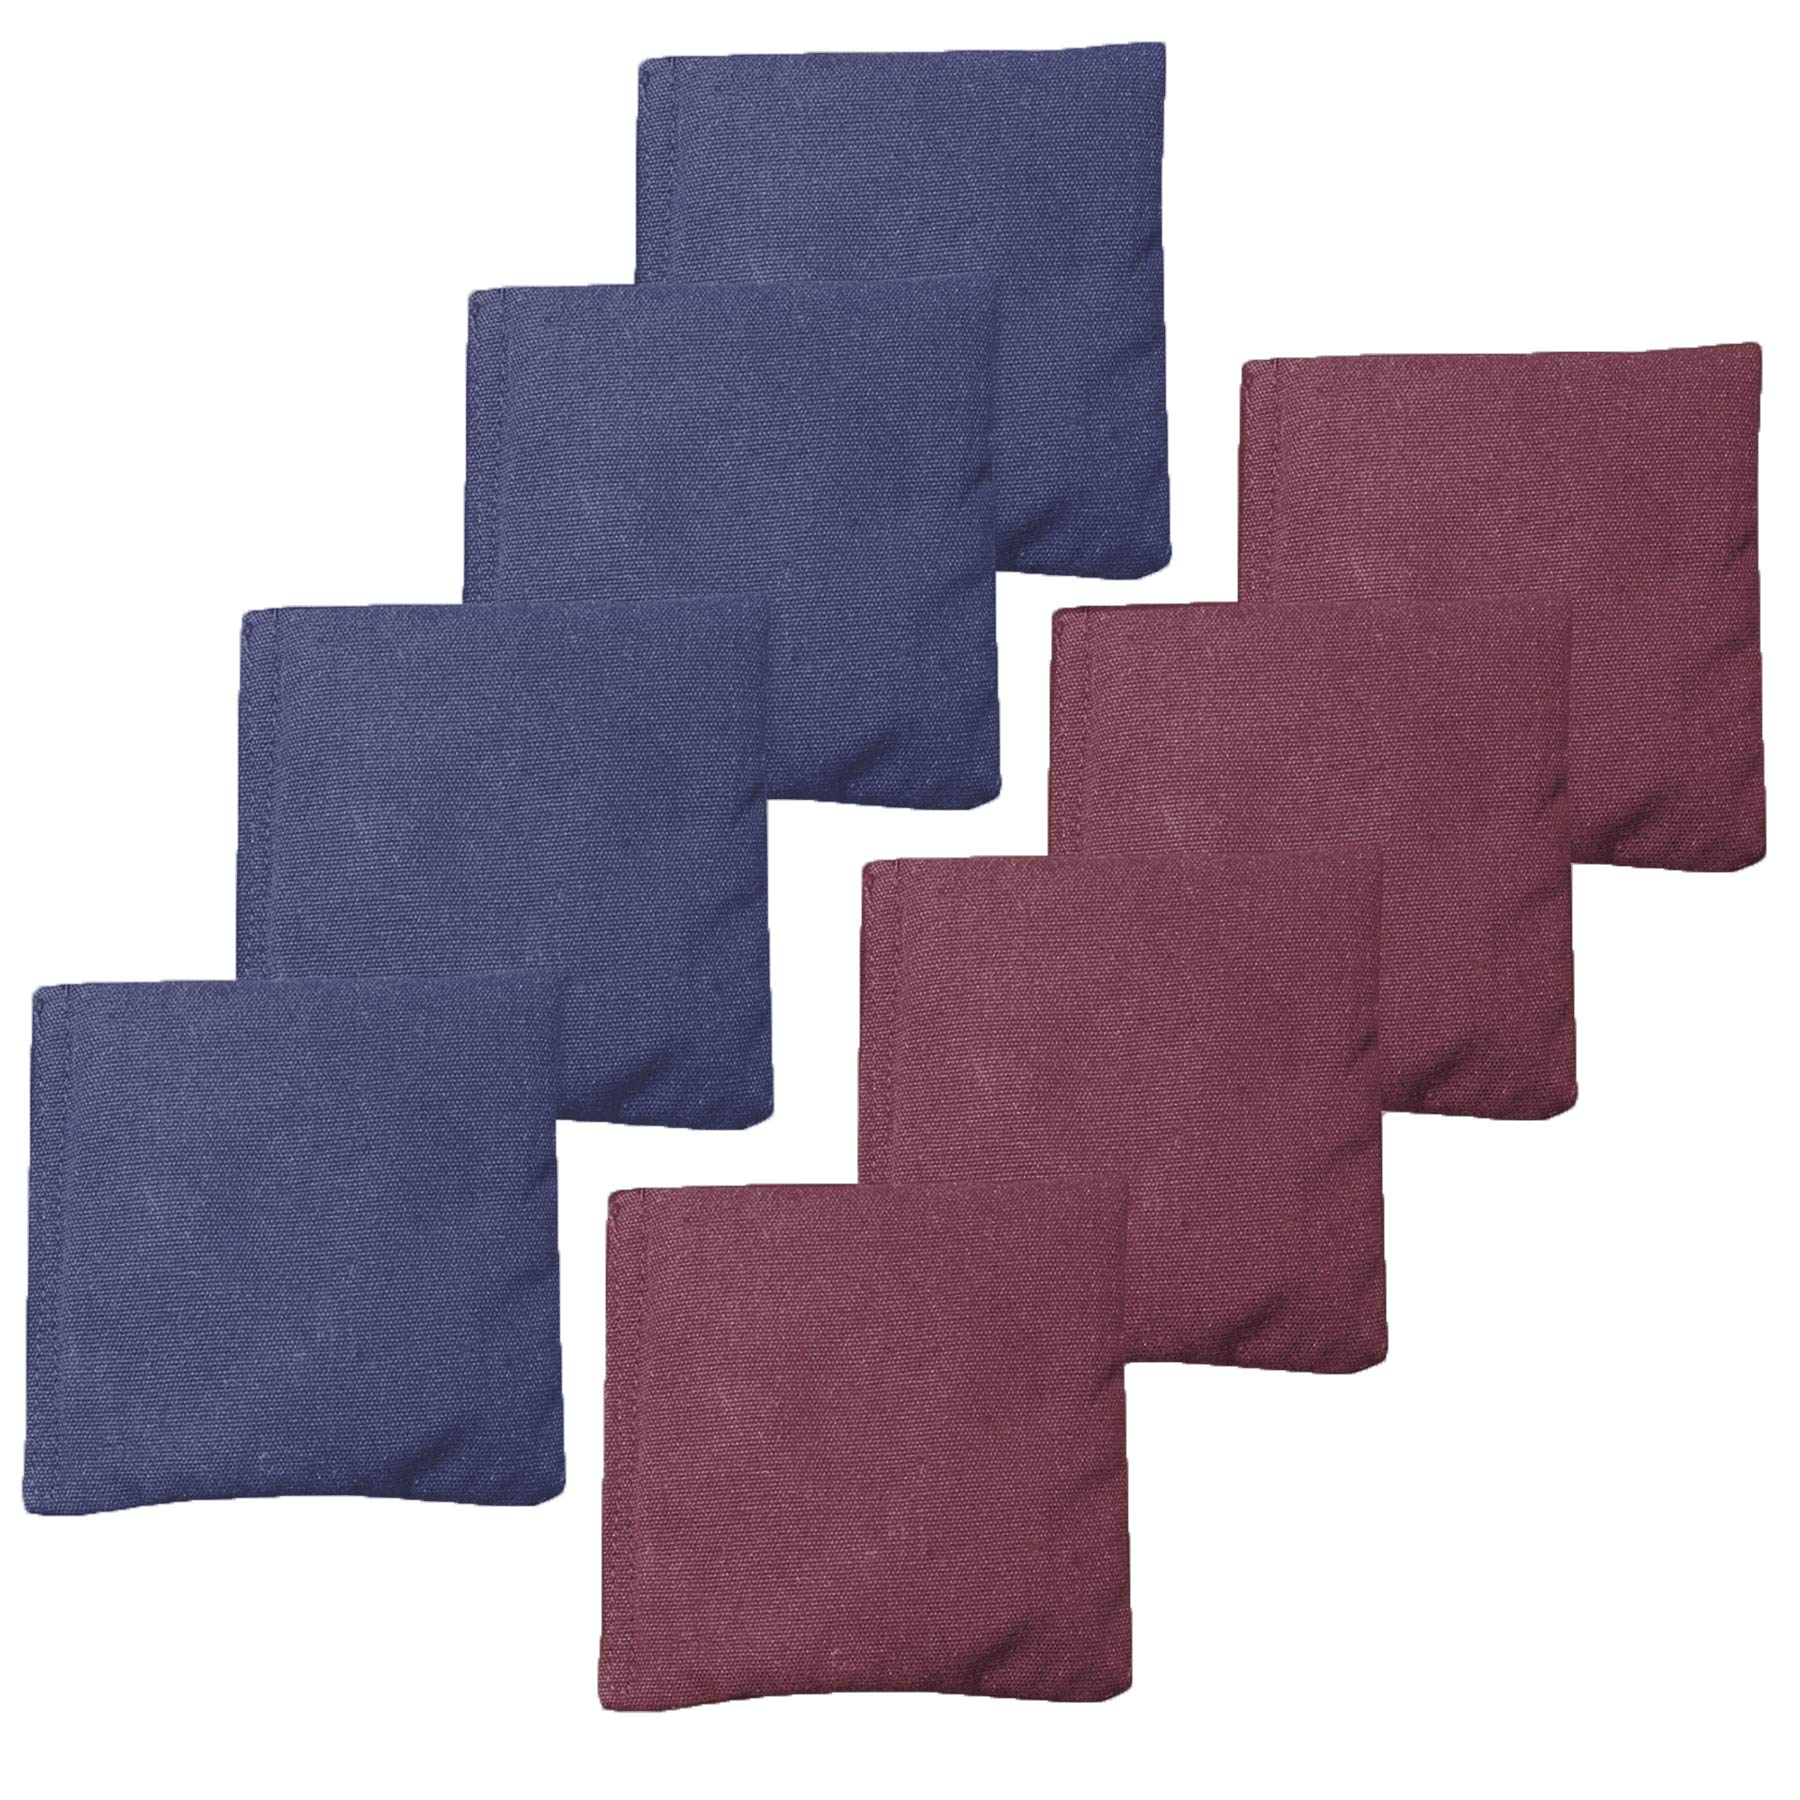 Weather Resistant Cornhole Bean Bags Set of 8 - Regulation Size & Weight - Burgundy & Navy Blue by Play Platoon